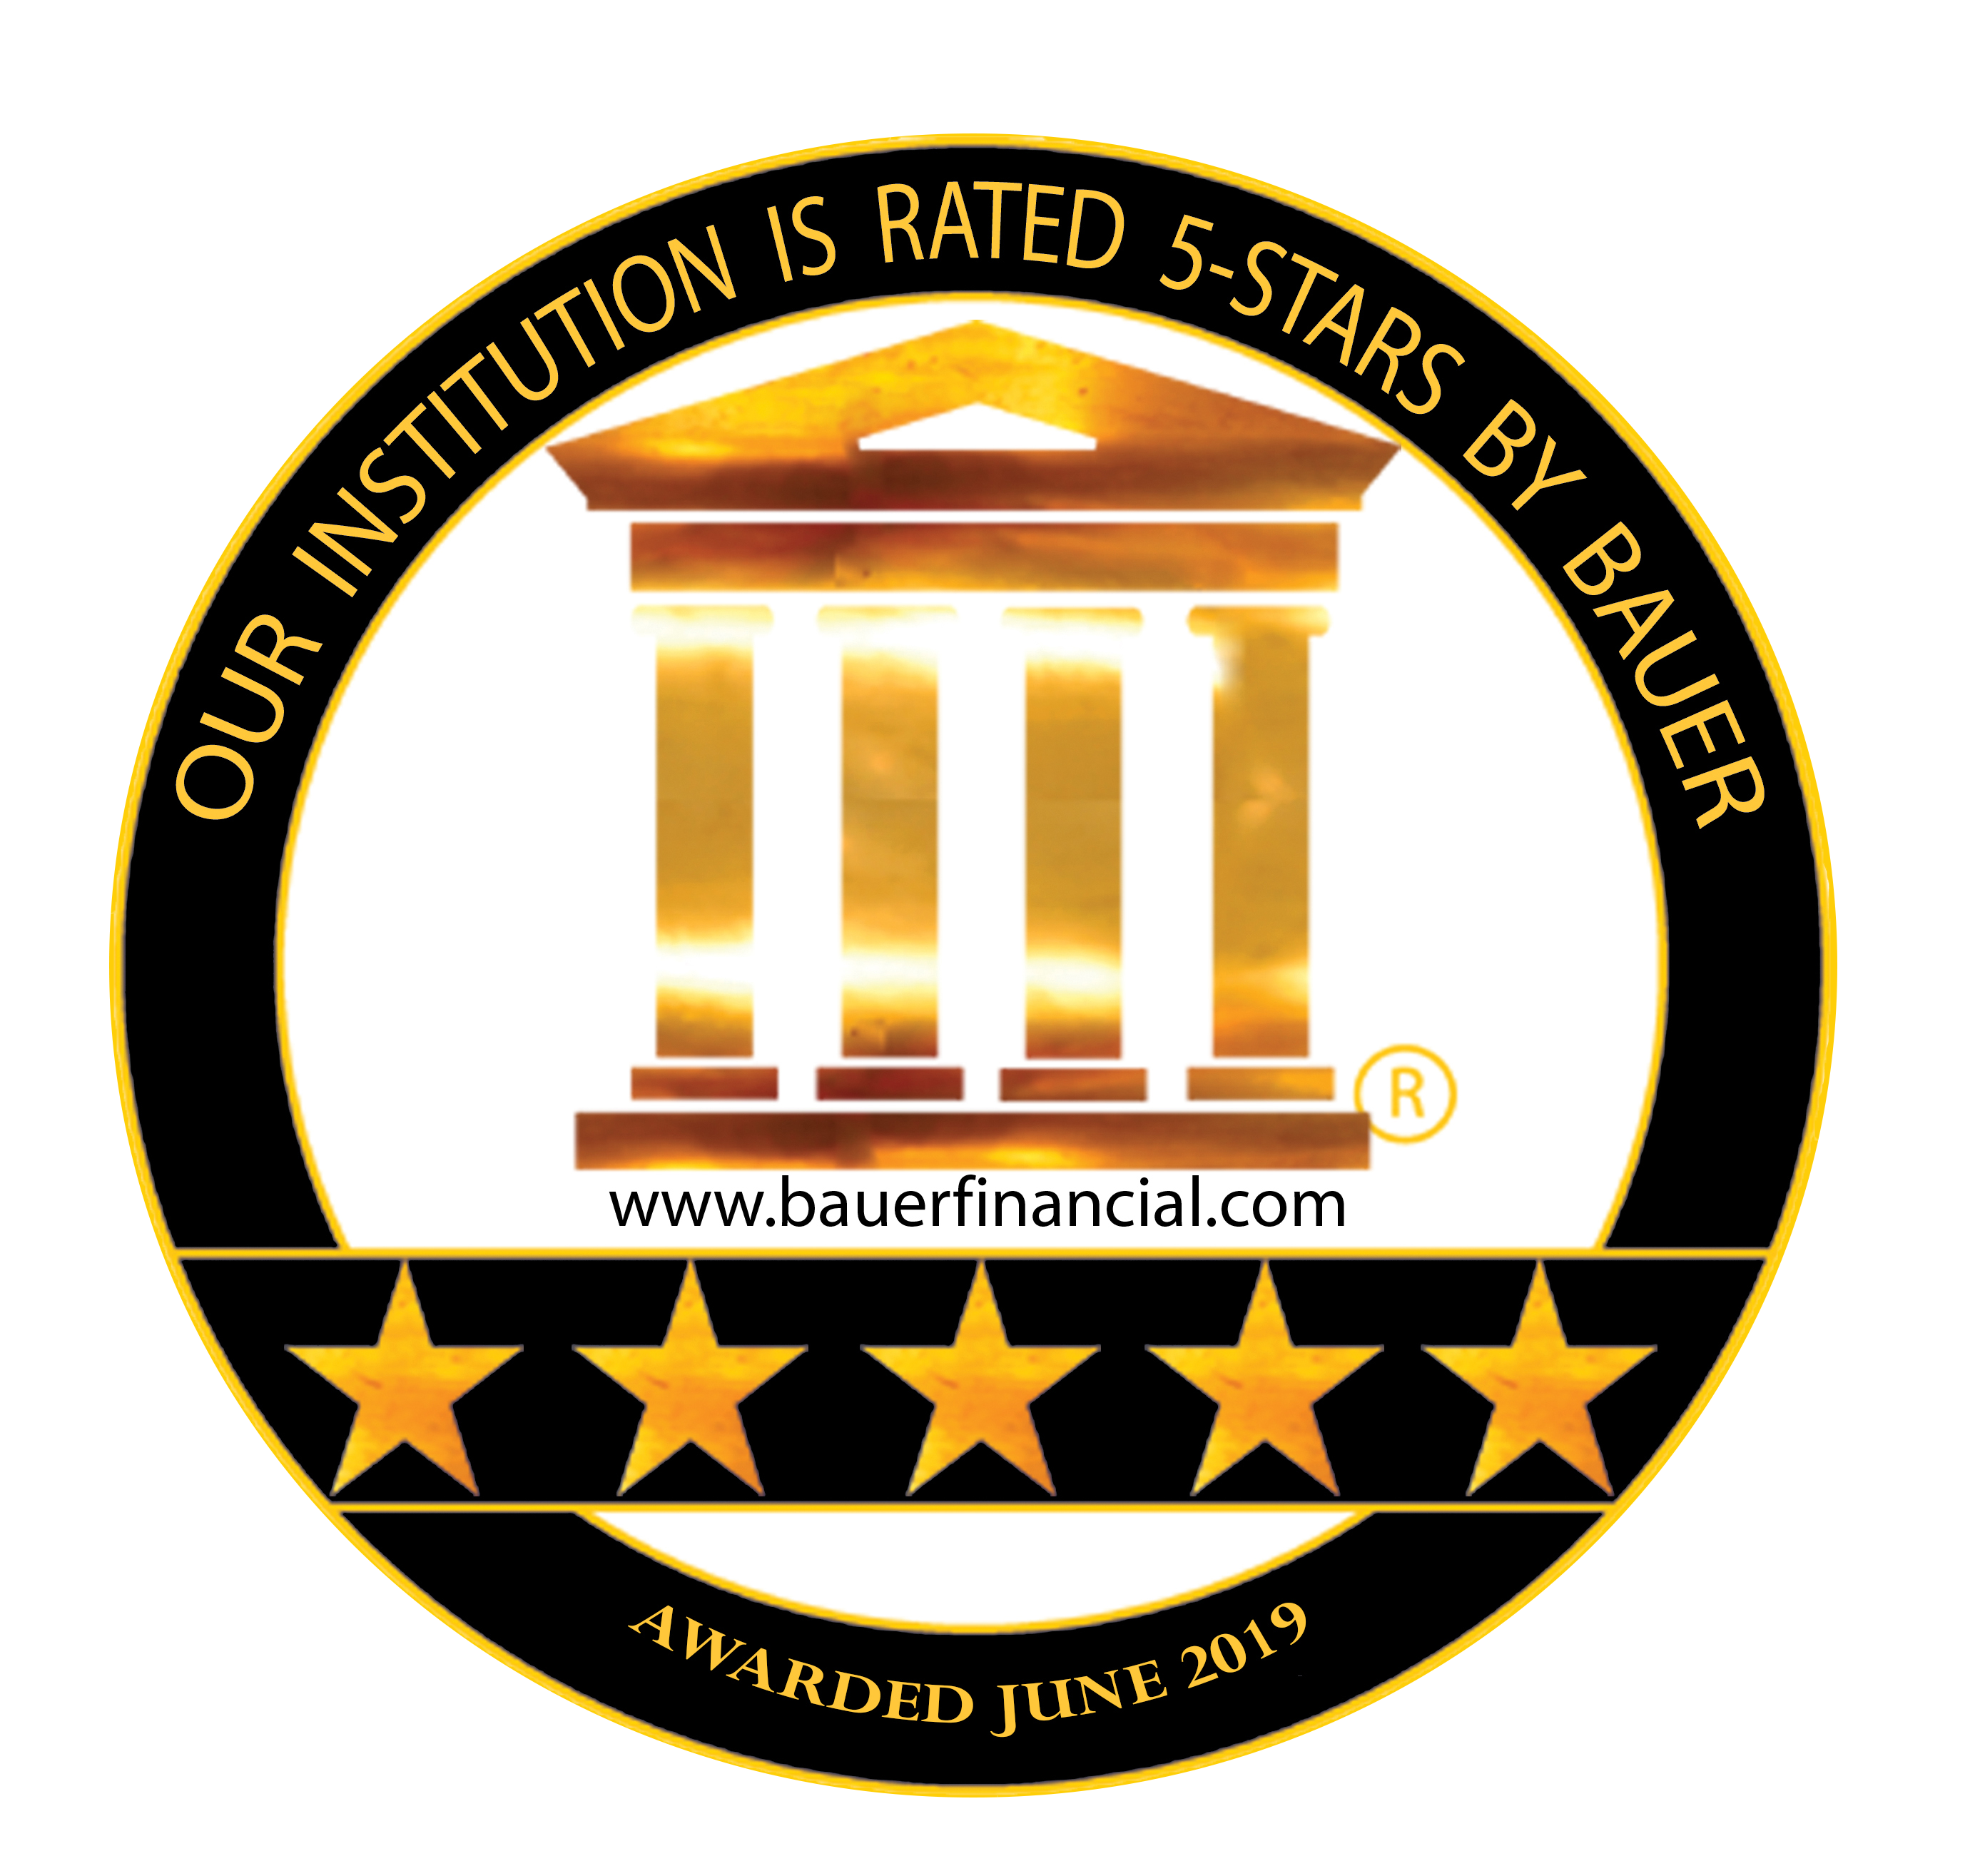 Central Credit Union Is 5 Star Rated By Bauer Financial